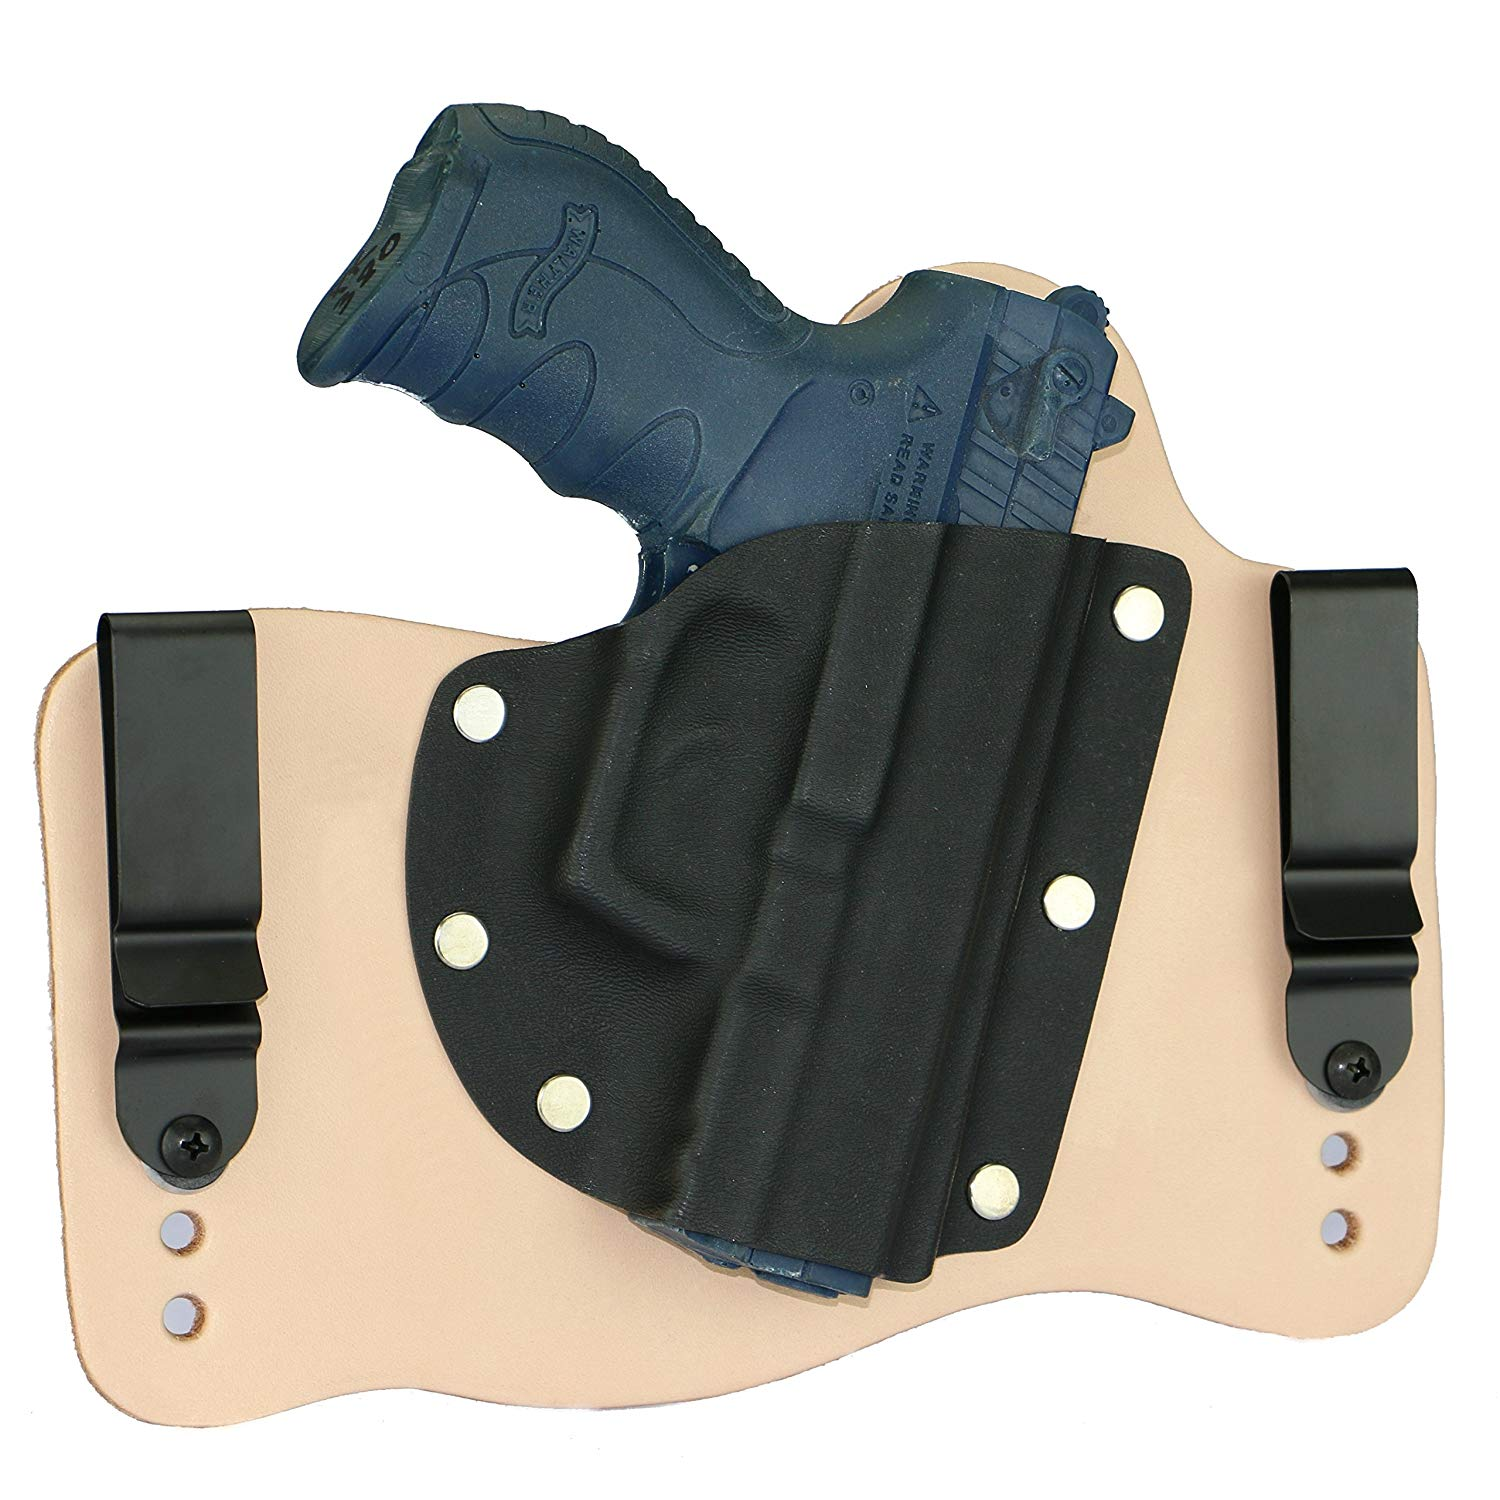 foxx adjustable iwb holster cream color